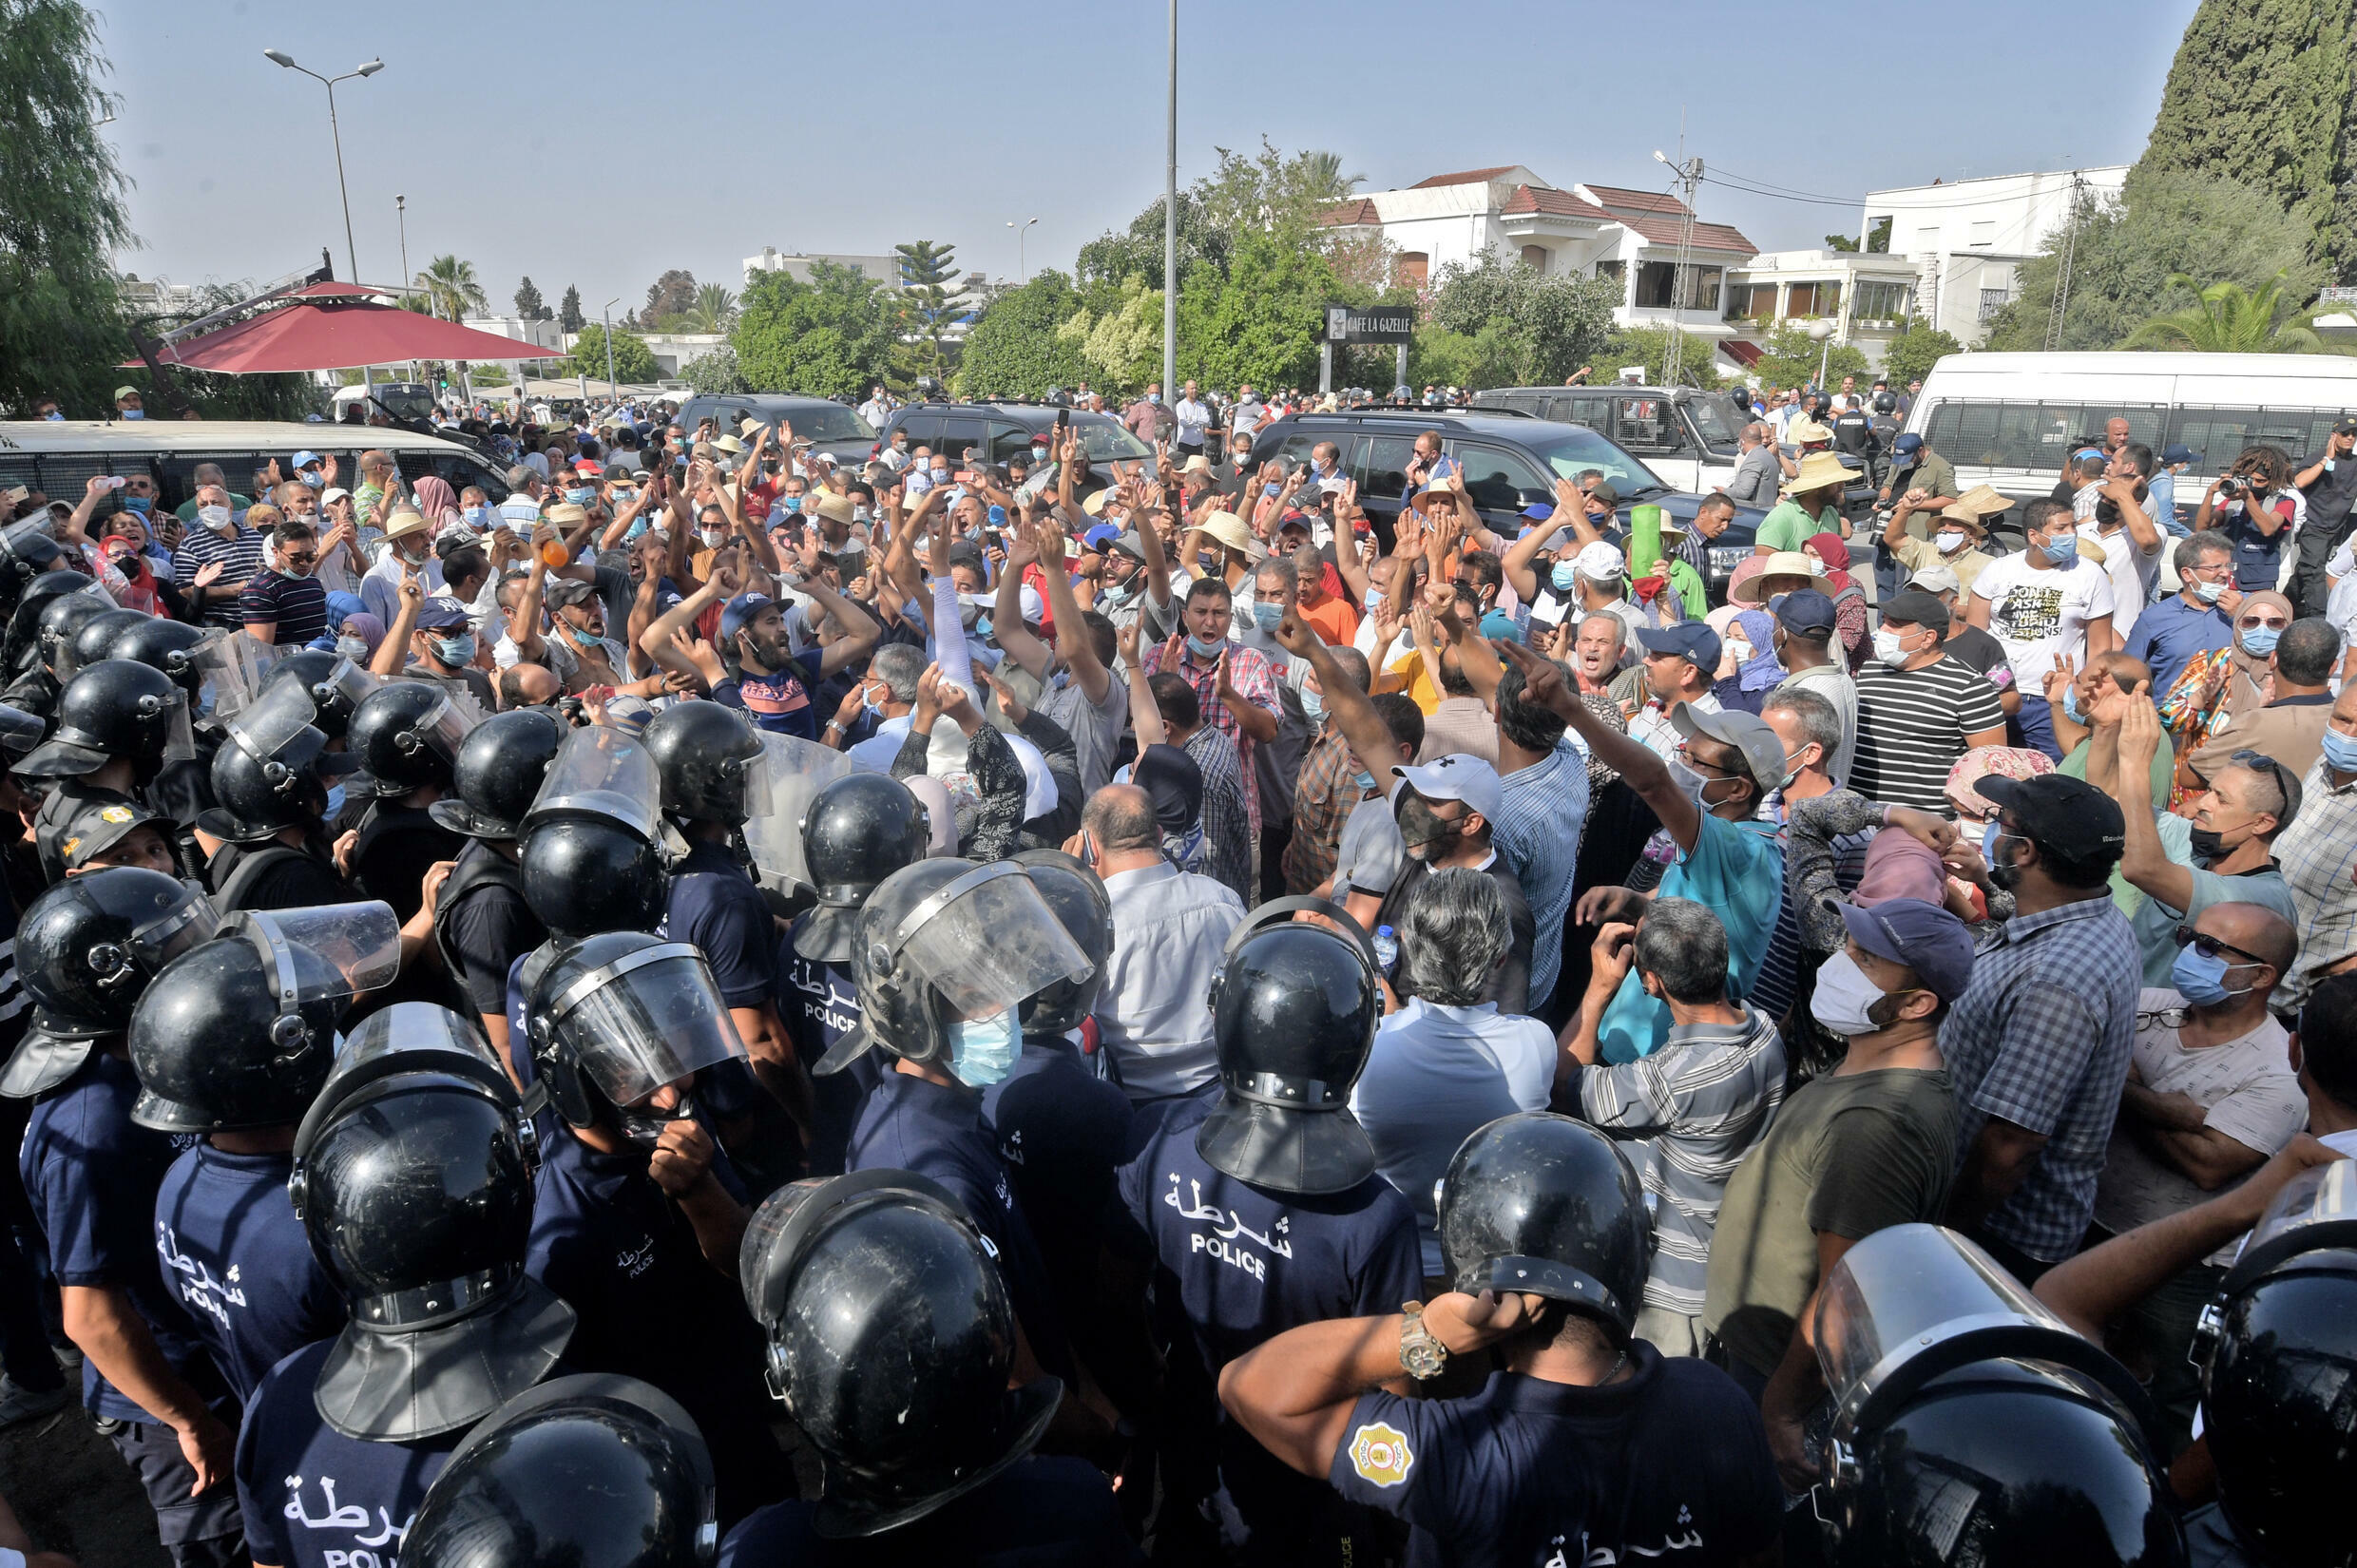 Tunisian security officers hold back protesters outside the parliament building on July 26, 2021 after President Kais Saied suspended the legislature